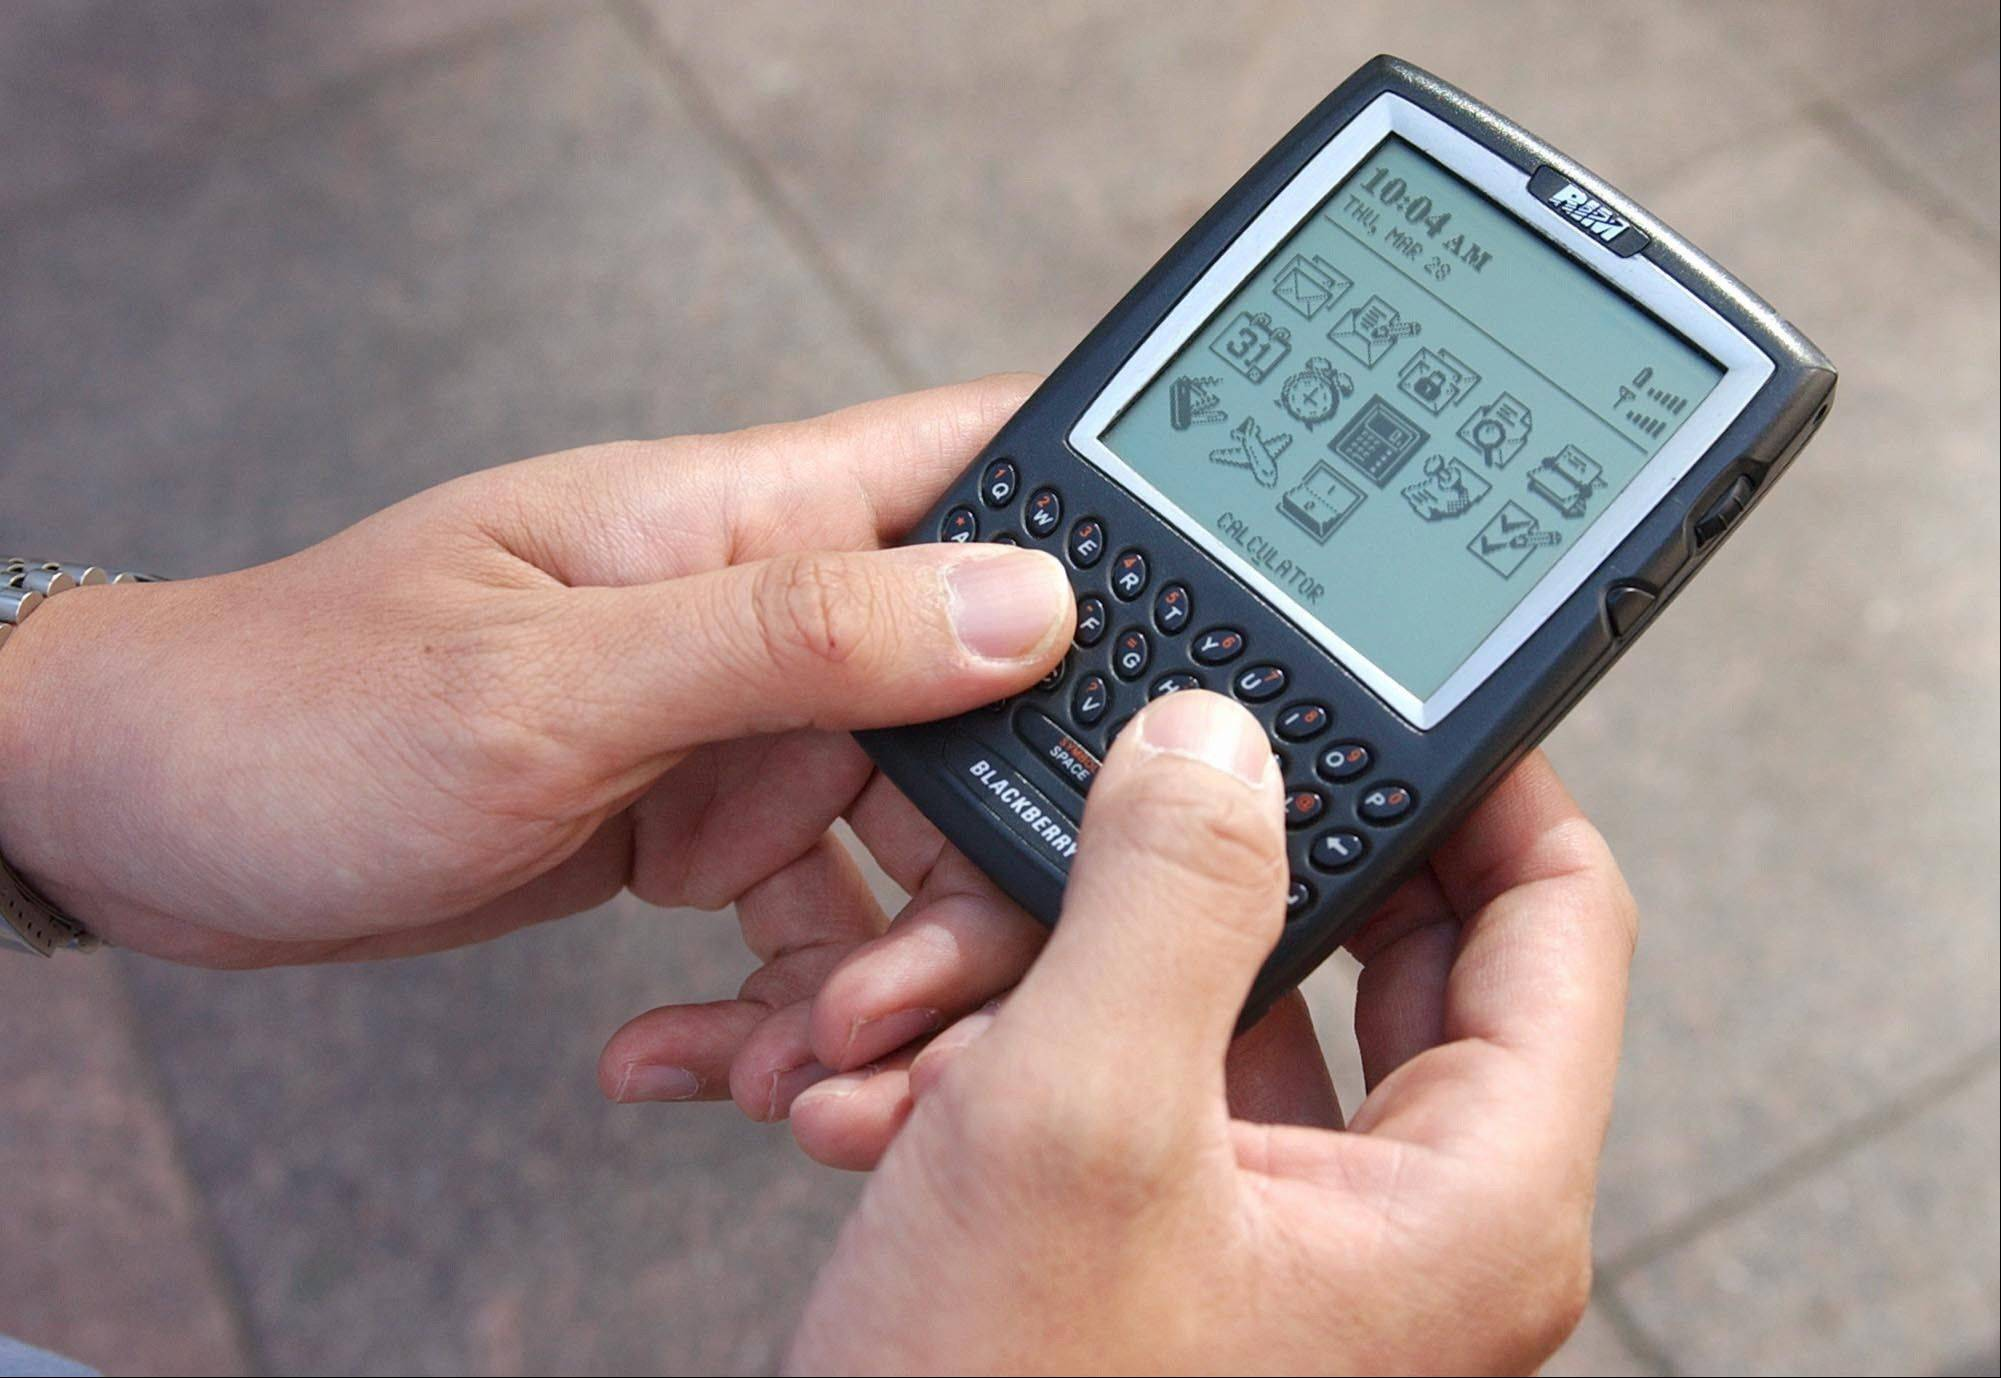 There is talk that the fate of Research In Motion, the company that fathered the BlackBerry in 1999, is no longer certain as its flagship property rapidly loses market share to flashier phones like Apple's iPhone and Google's Android-driven models.